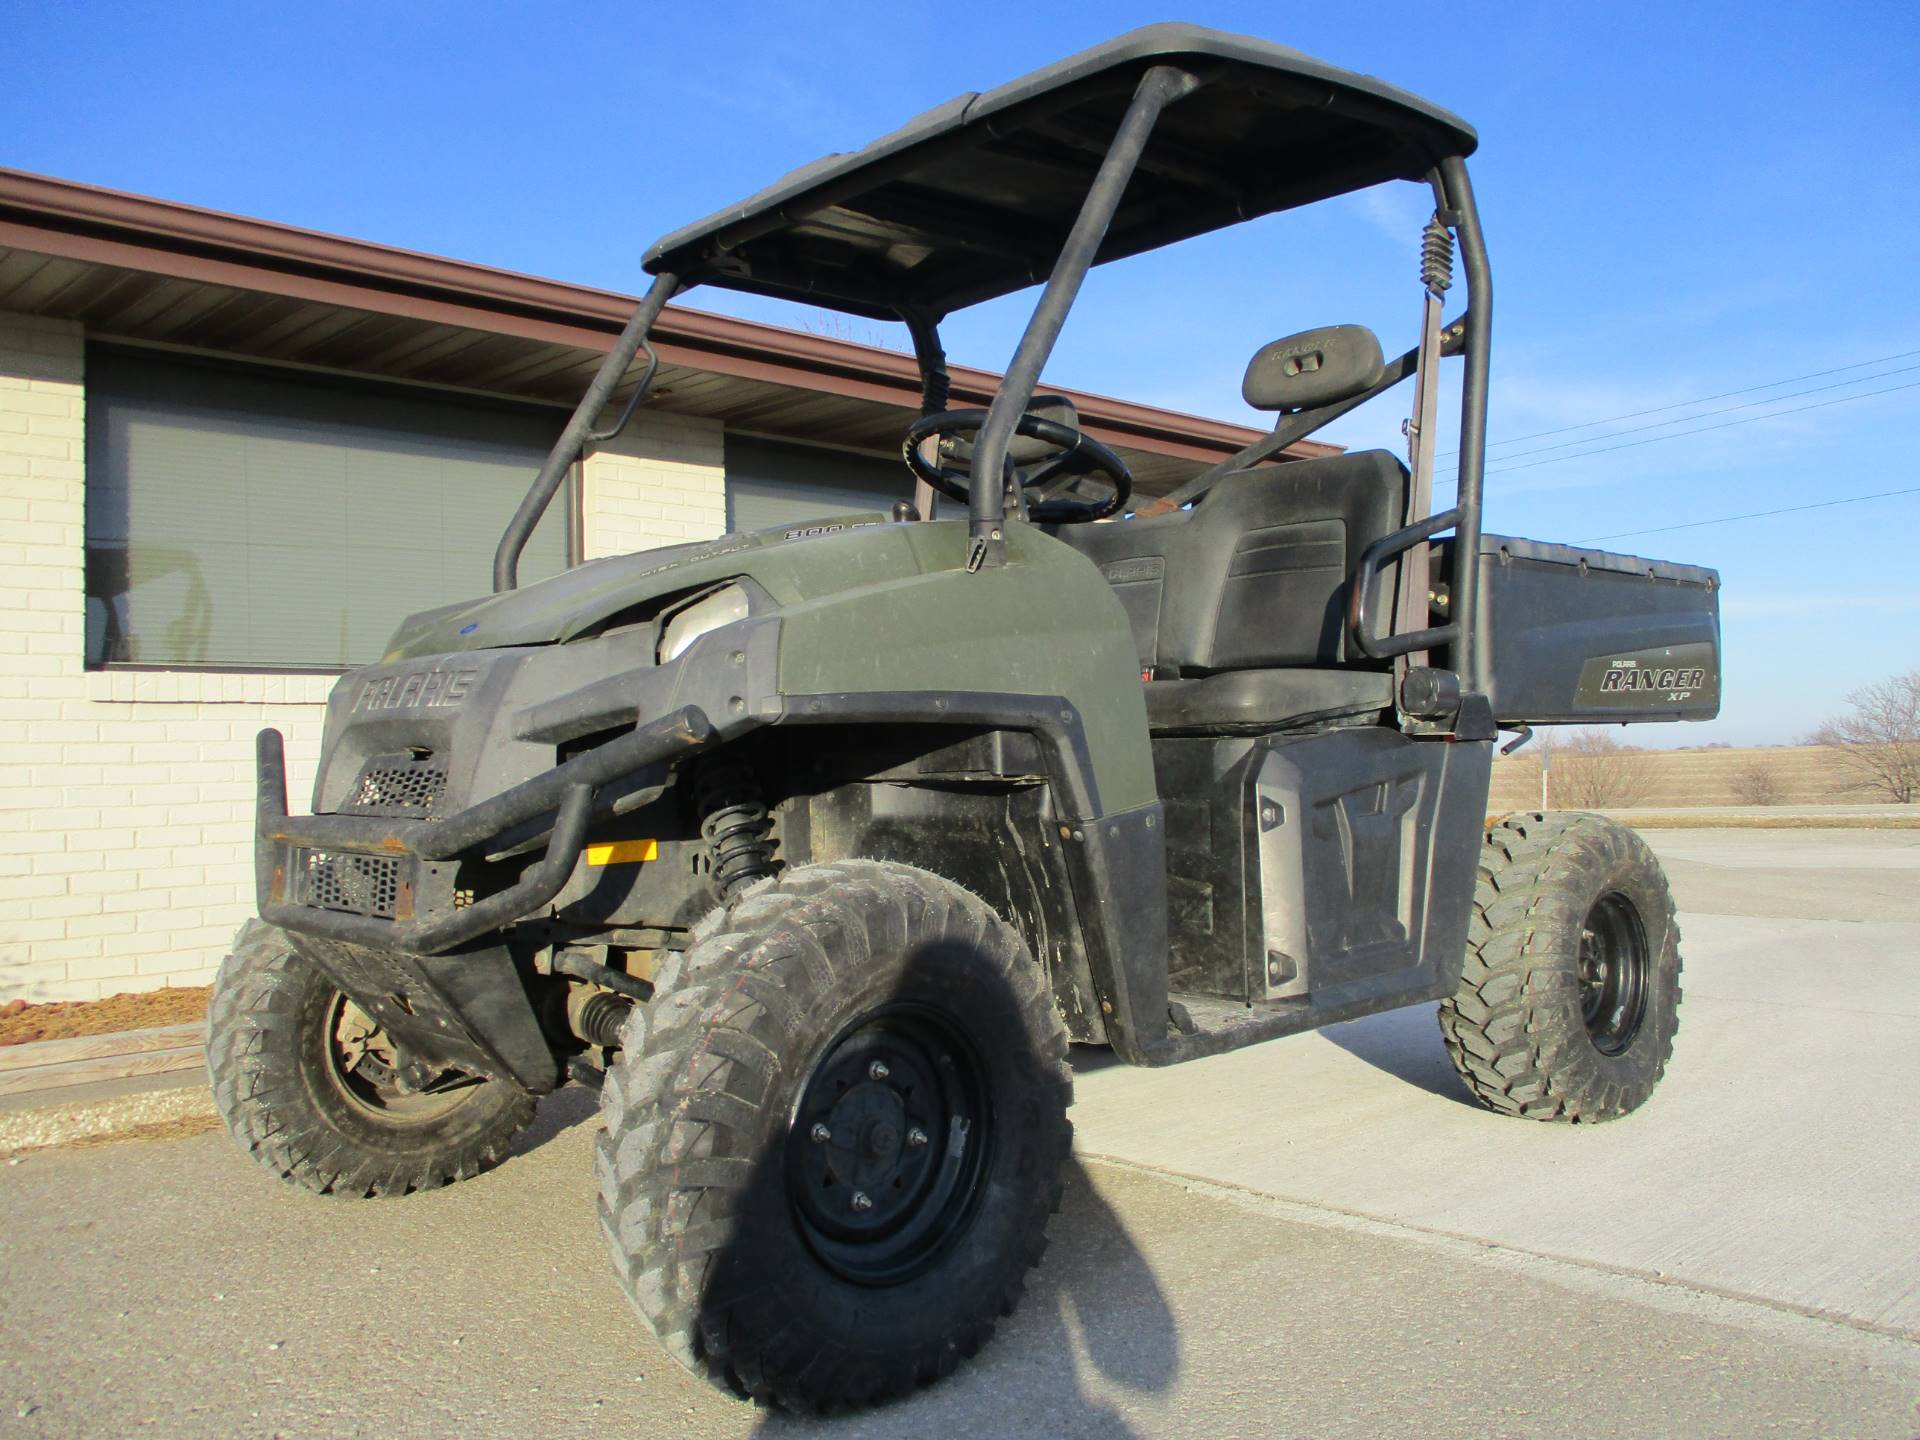 2011 Polaris Ranger XP® 800 in Winterset, Iowa - Photo 4